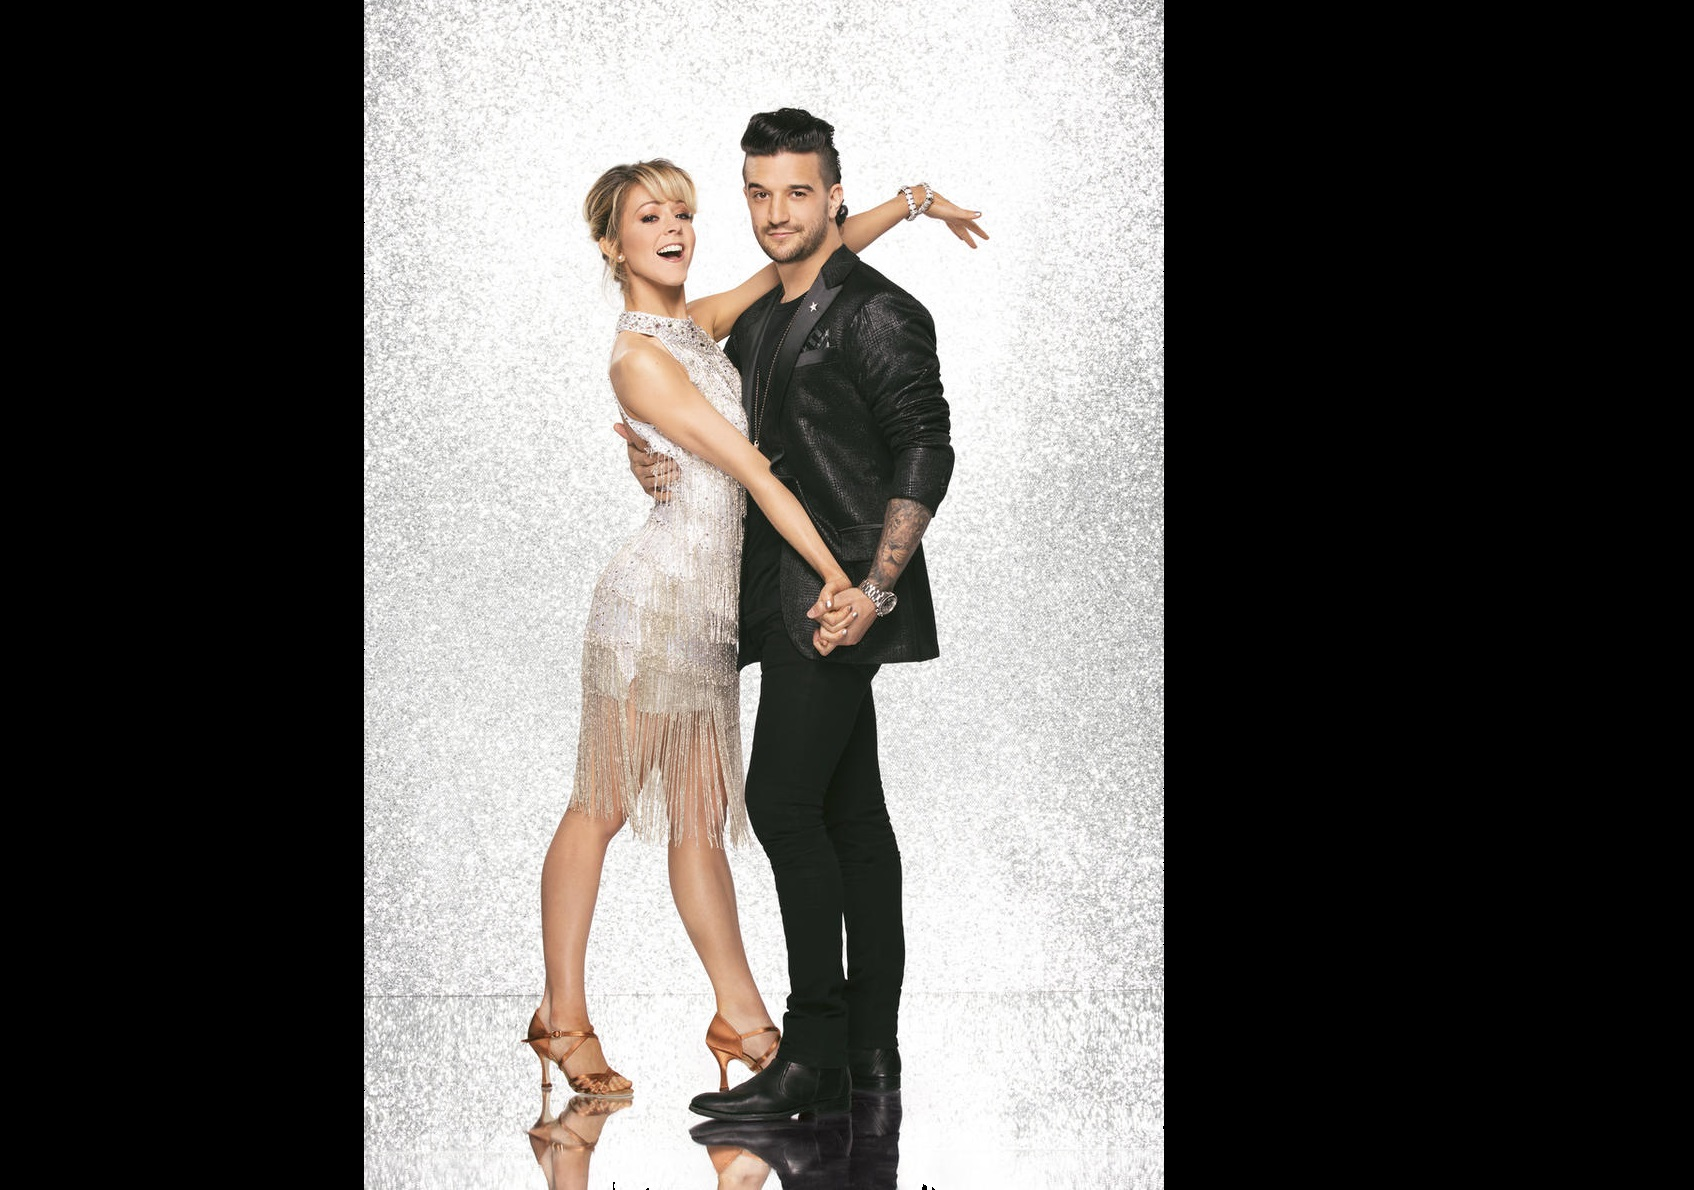 Lindsey Stirling to Appear on This Season's Dancing With the Stars